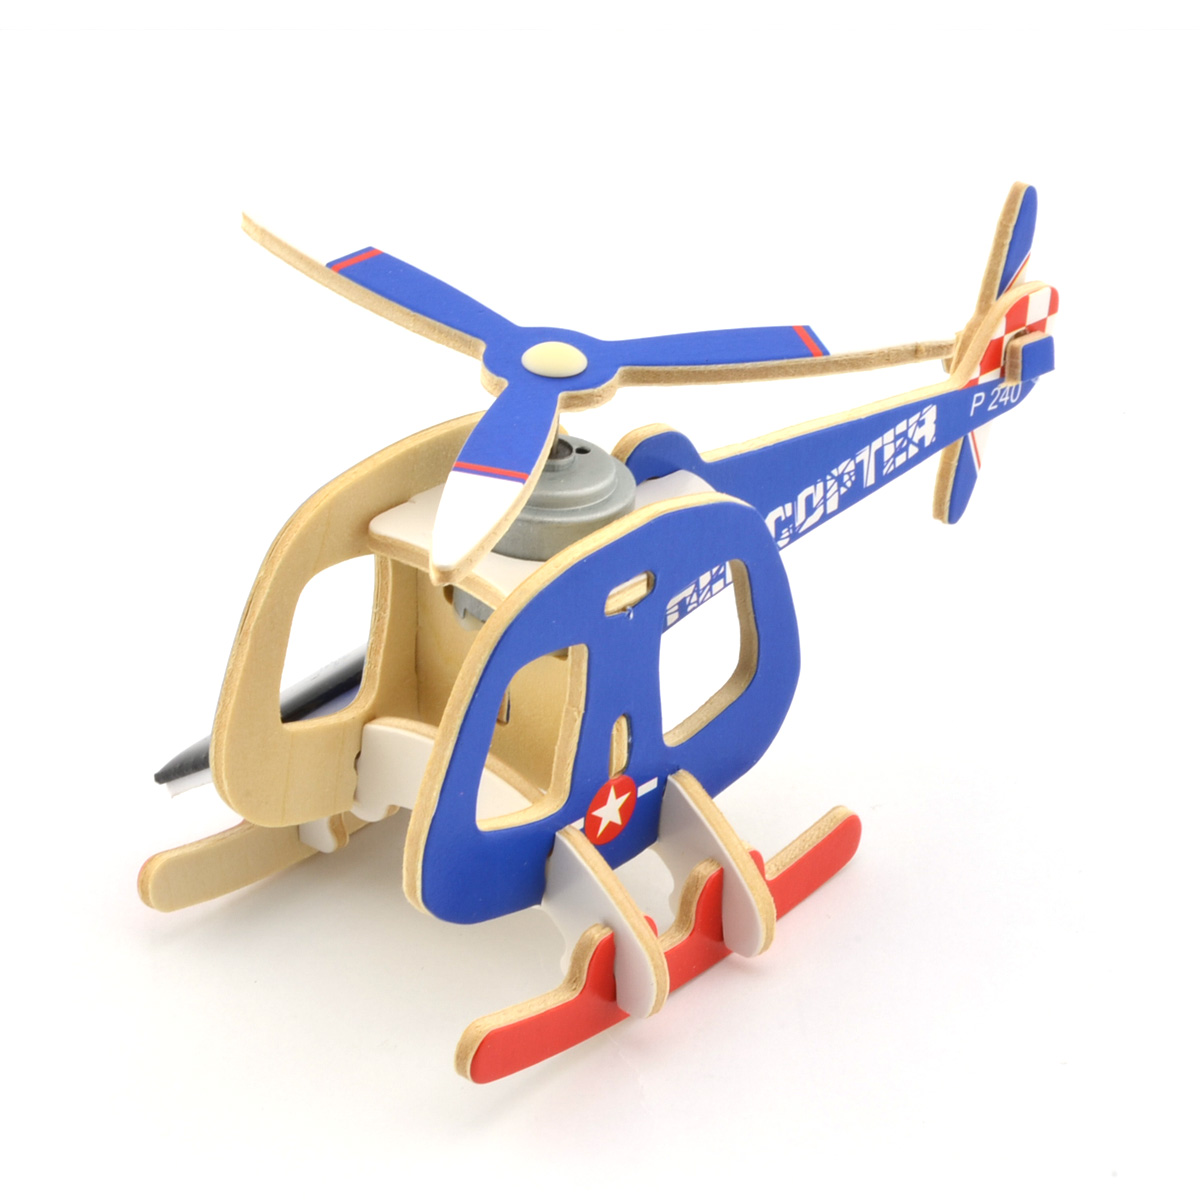 Funny Kids Diy Educational Assembly Puzzle Solar Powered 3d Wooden Scorpion Twin-engine Helicopter Aircraft Woodcraft Toy Puzzles